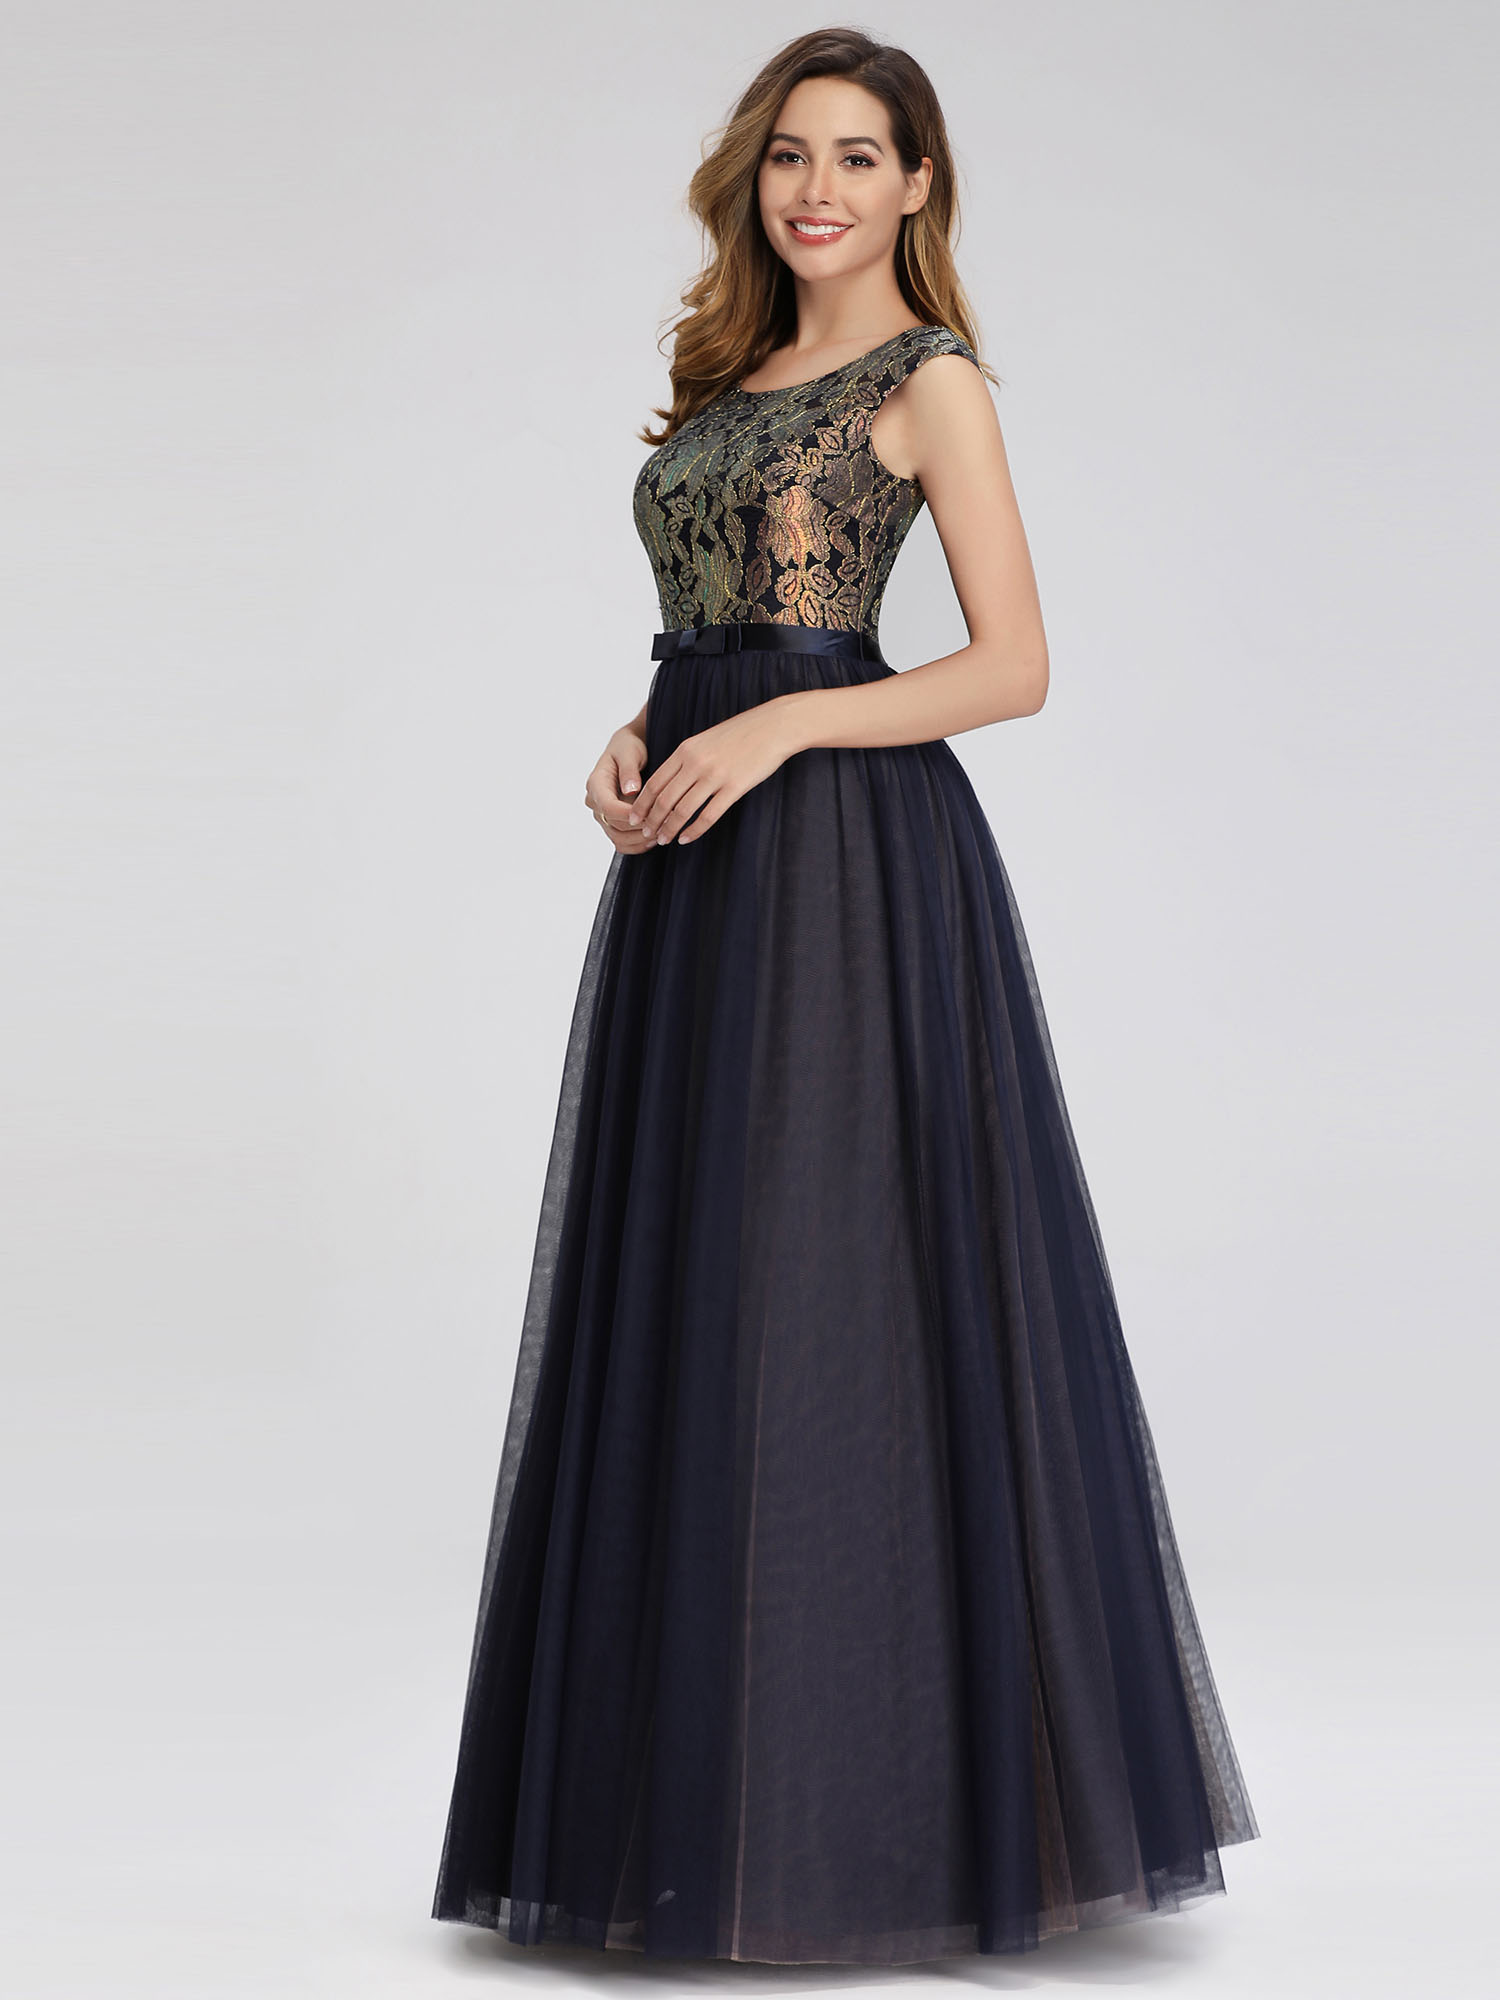 Ever-pretty-Formal-A-line-Evening-Gowns-Cocktail-Long-Lace-Homecoming-Prom-Dress thumbnail 6